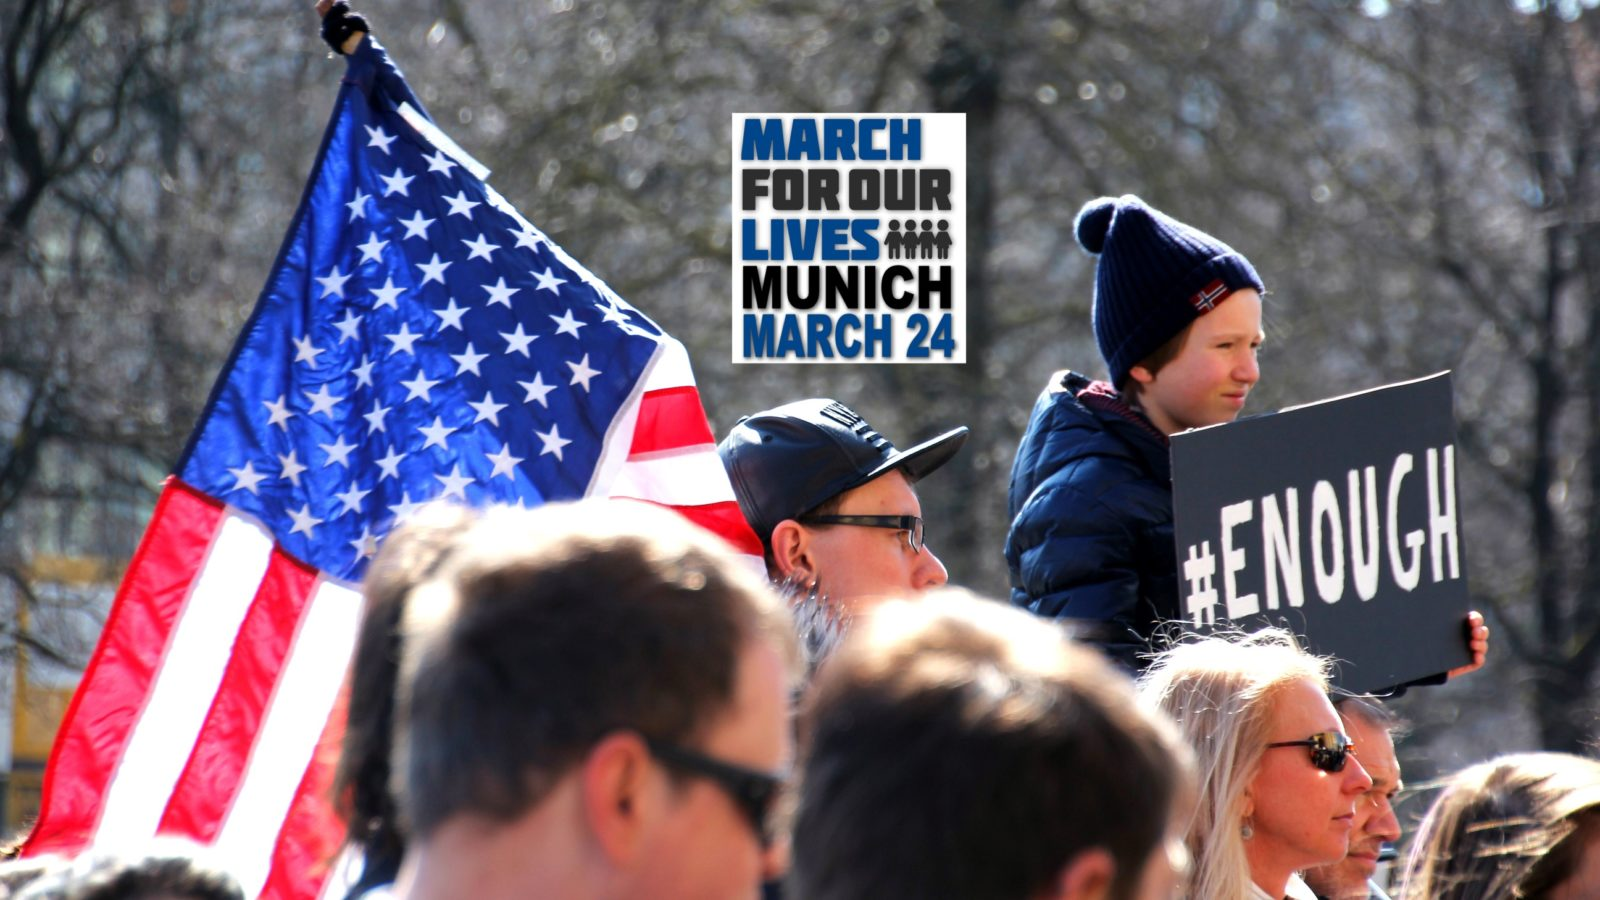 MunichNOW Munich March For Our Lives